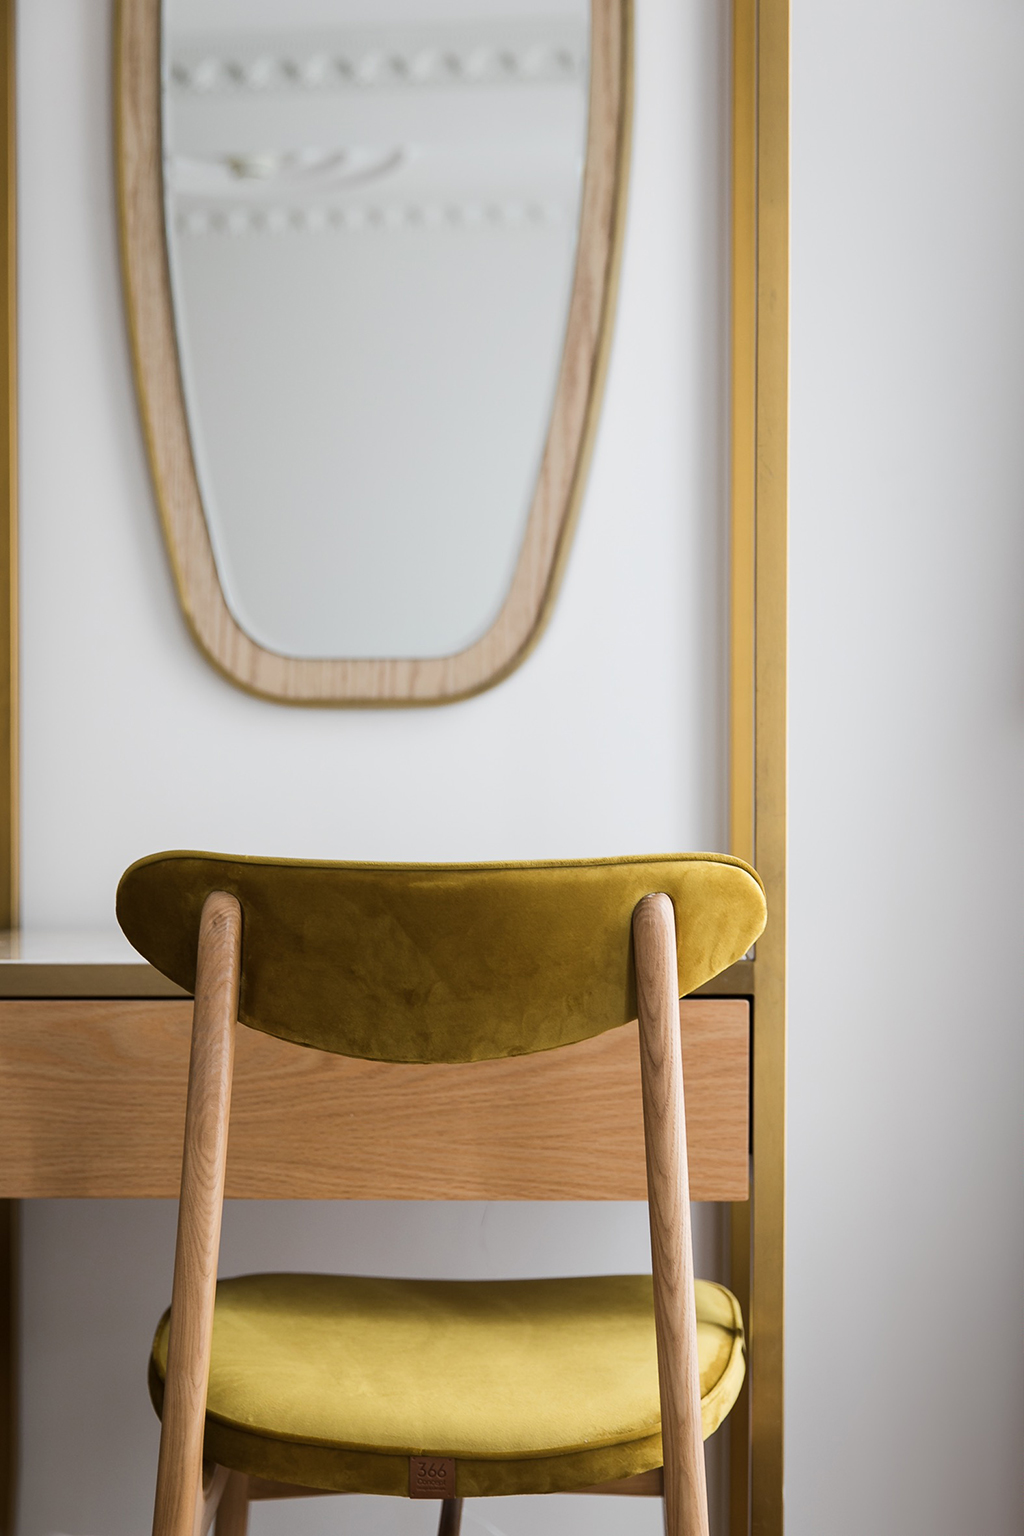 366 Concept 200-190 Dining Chair Yellow In a Room